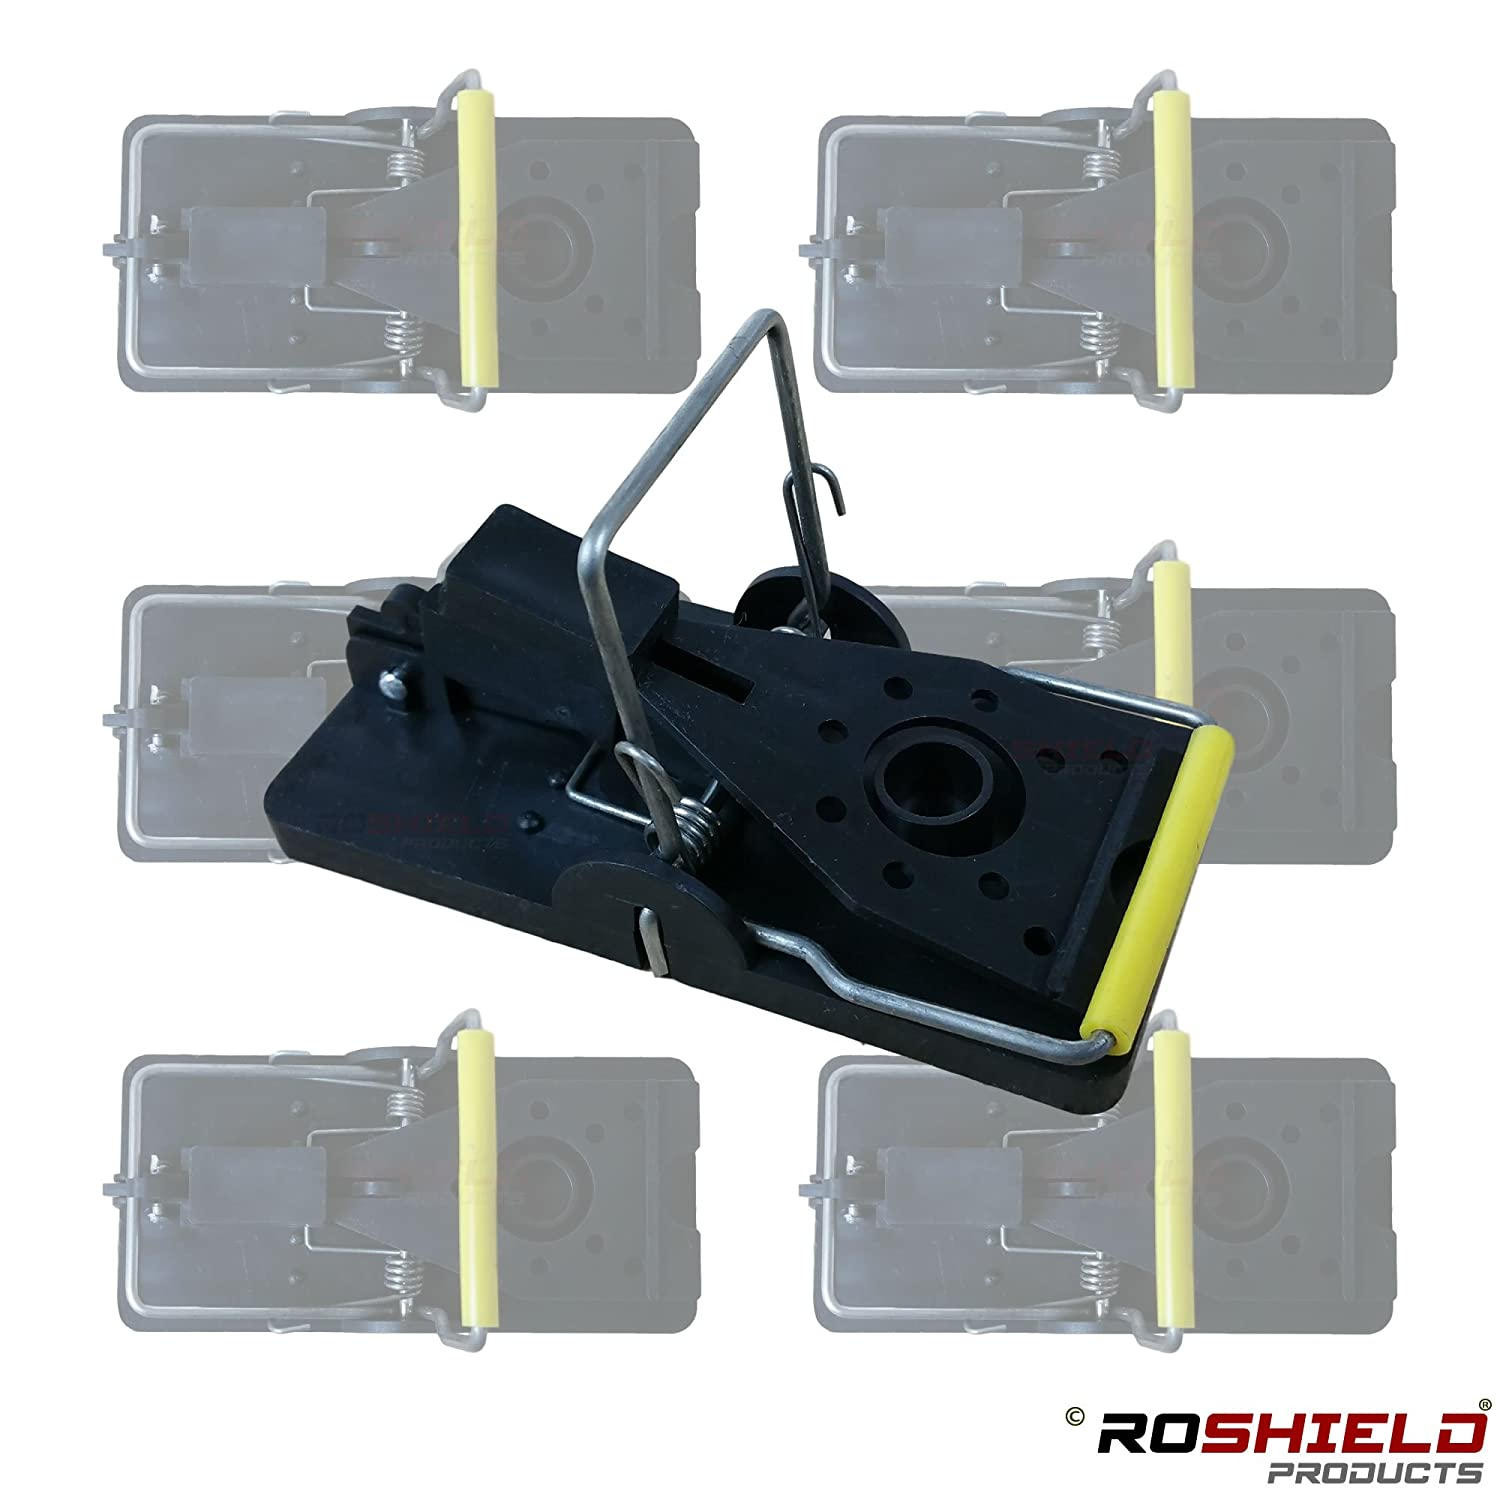 6 x Roshield Mouse Traps - Professional Heavy Duty Control Traps for Mice Seaheaven Ltd IQ-DTF9-3ZDZ